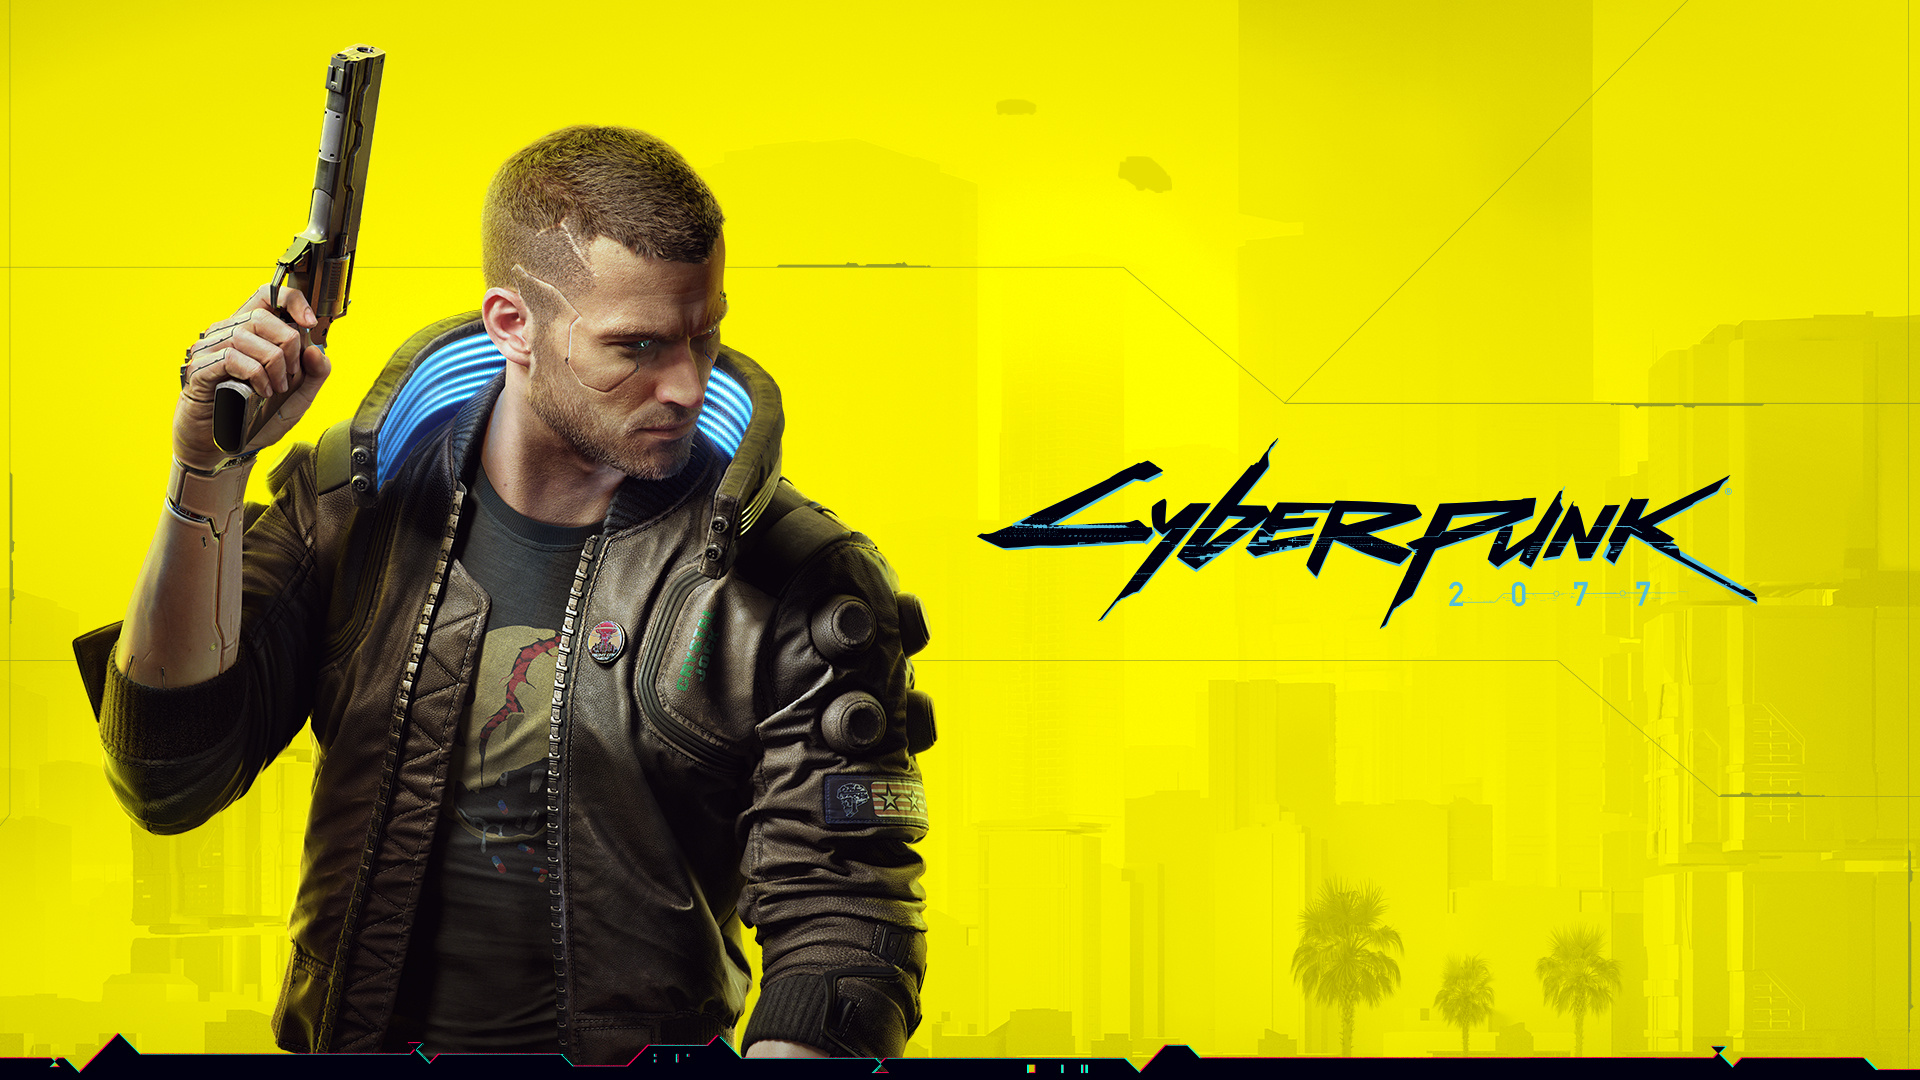 Cyberpunk 2077 will have as much DLC as The Witcher 3